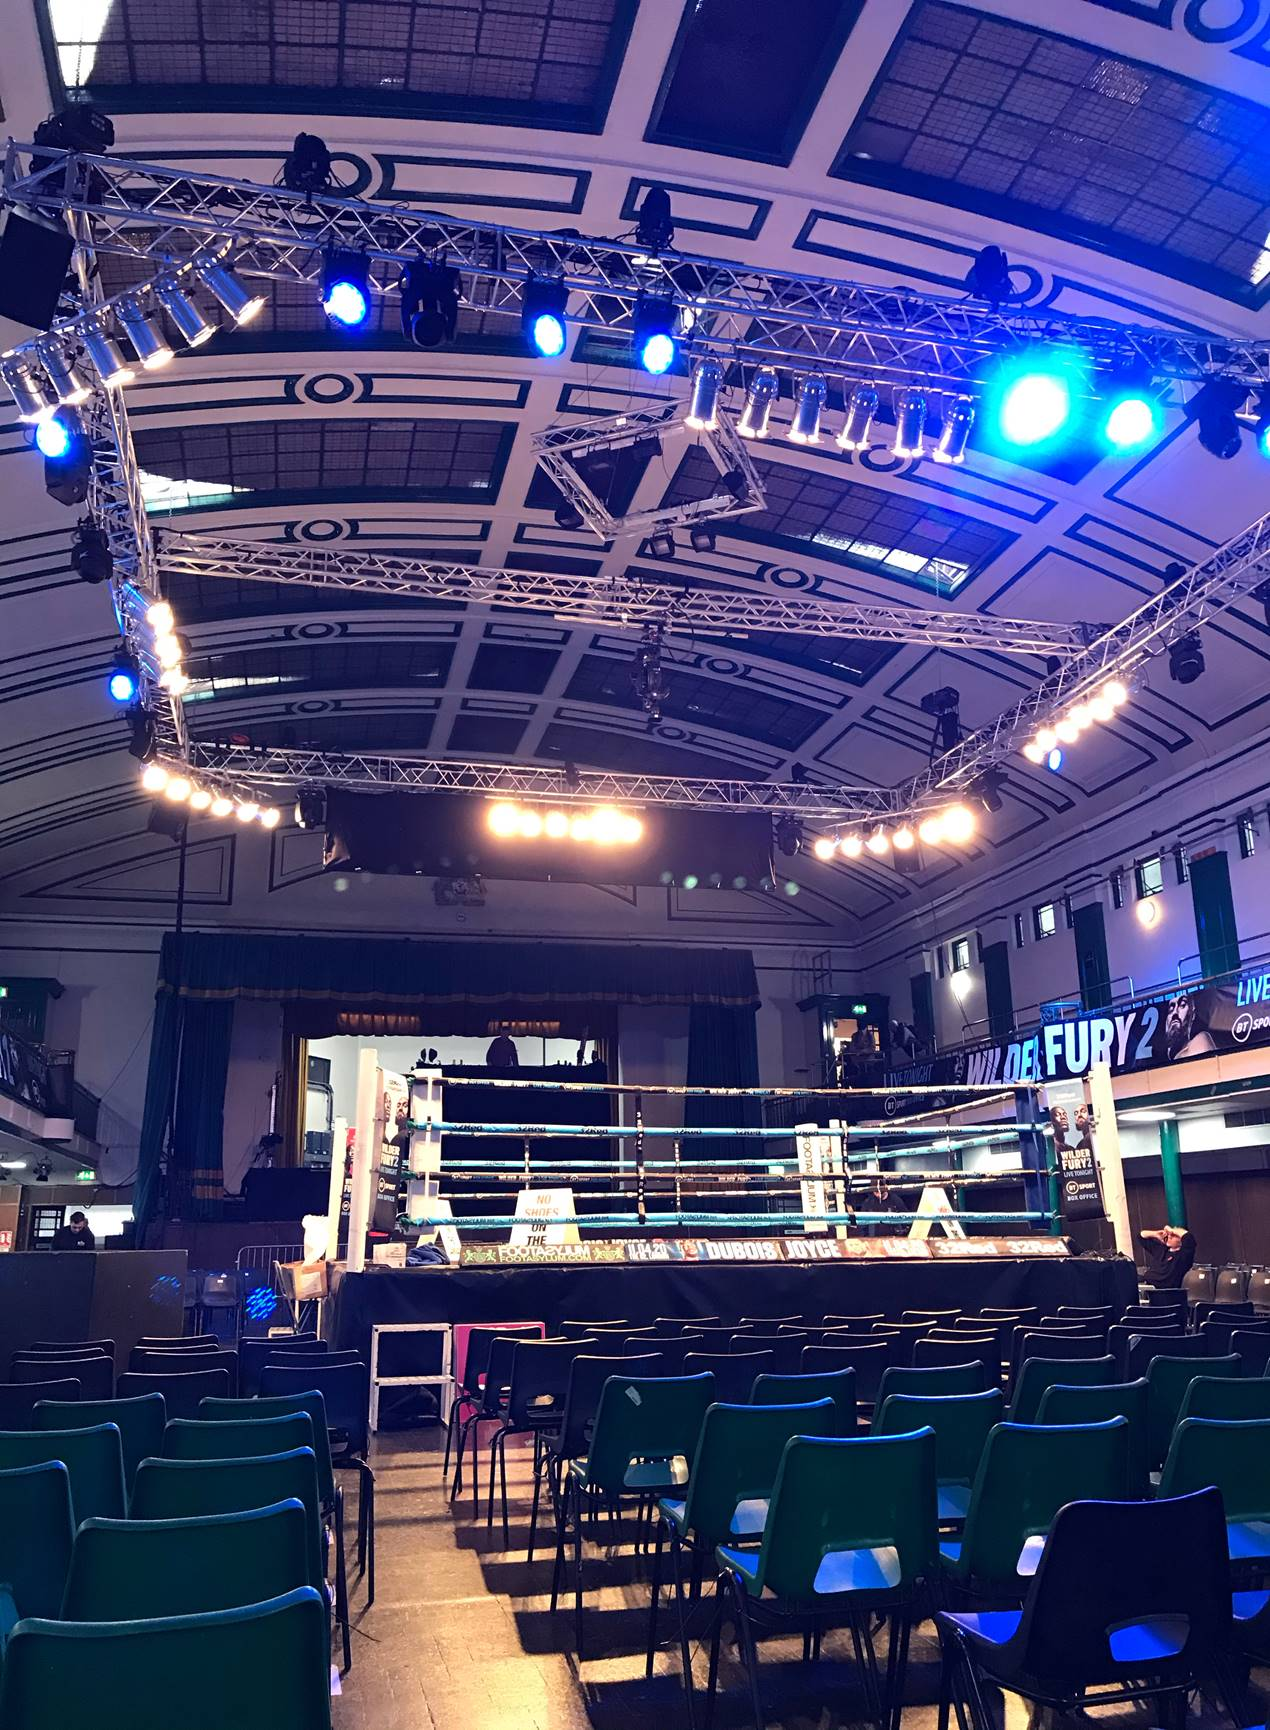 Boxing event at York Hall